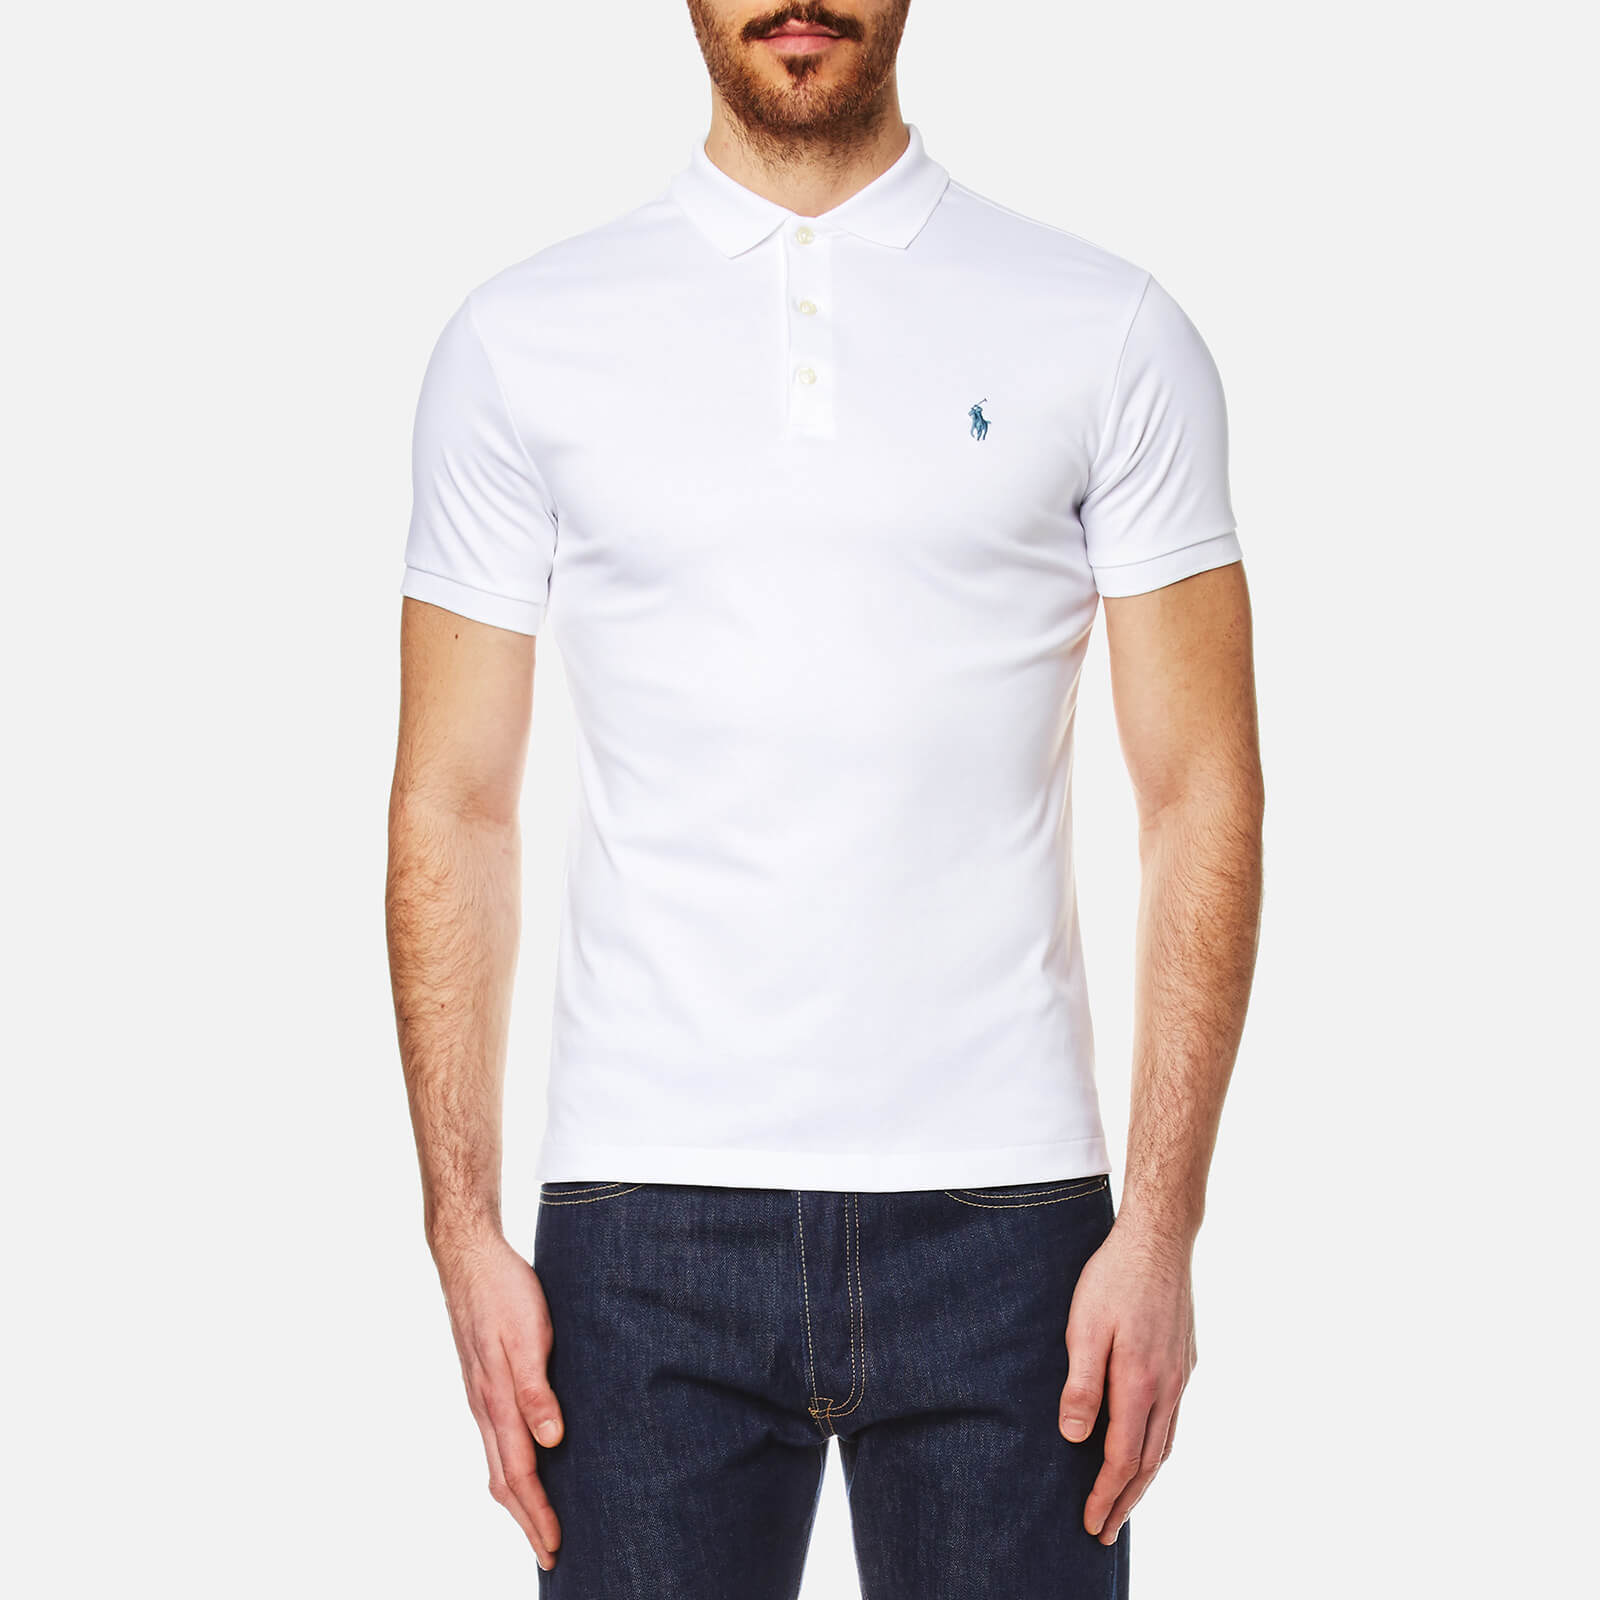 887f5b60 Polo Ralph Lauren Men's Pima Cotton Slim Fit Polo Shirt - White - Free UK  Delivery over £50